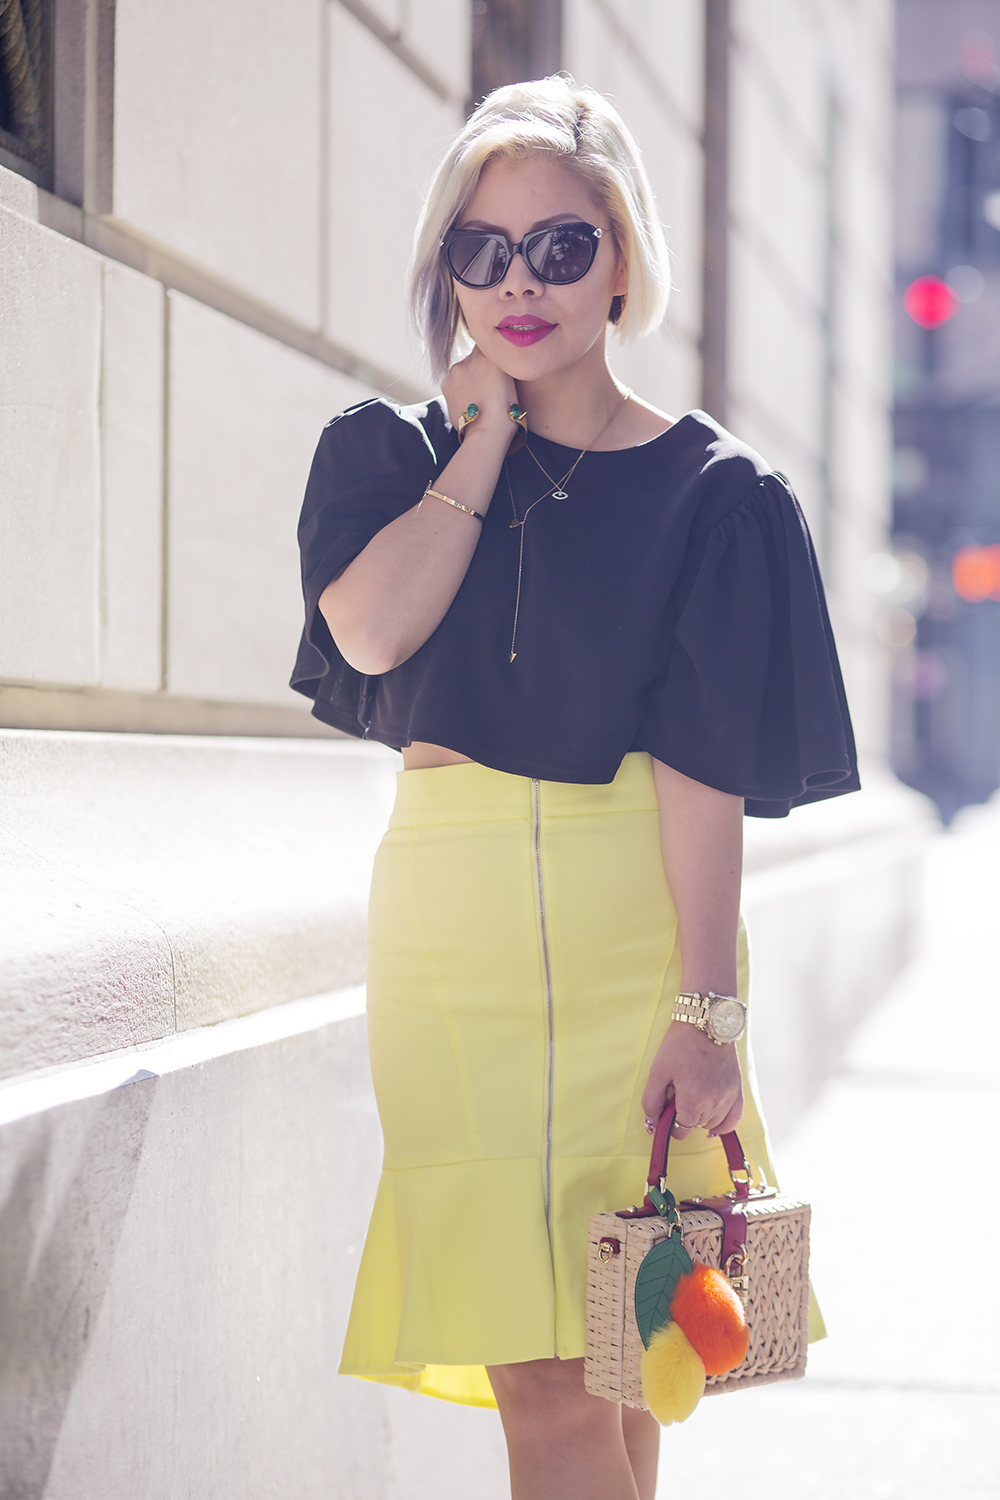 New York Fashion Week 2015- NYFW Street style blogger- Crystal Phuong